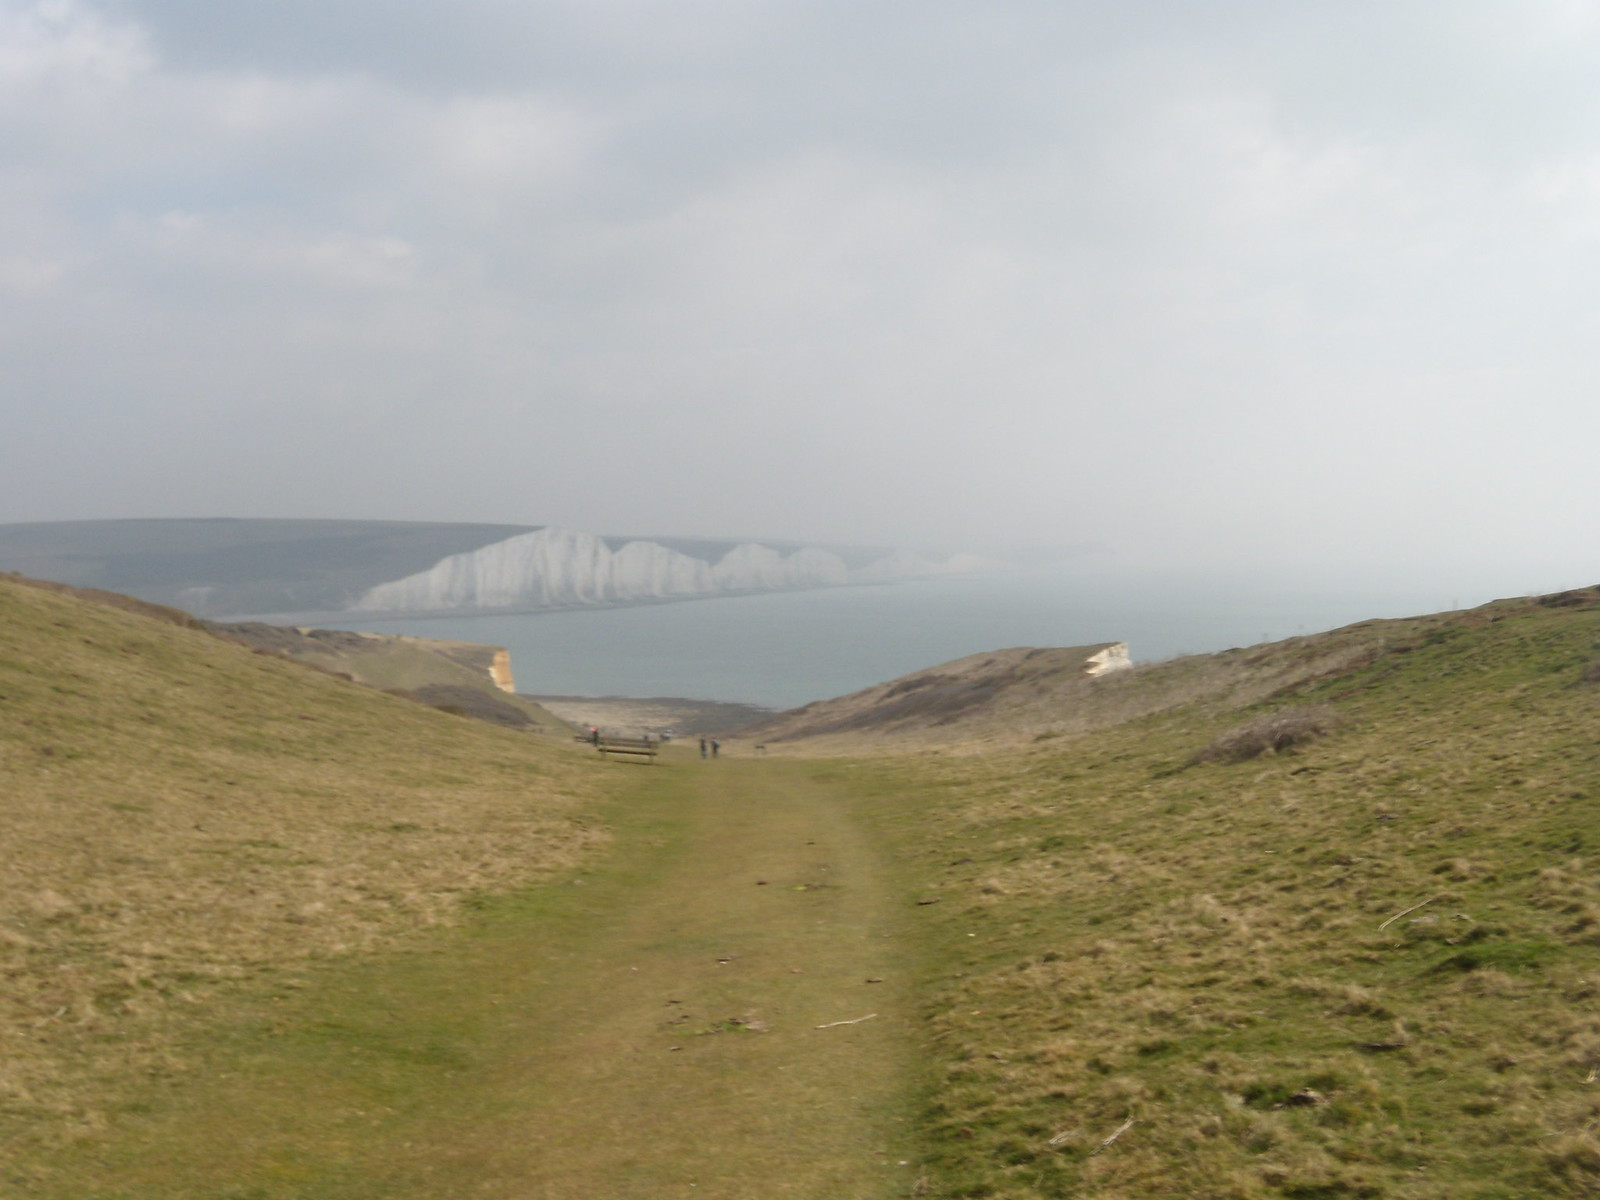 Misty Sisters Seaford to Eastbourne